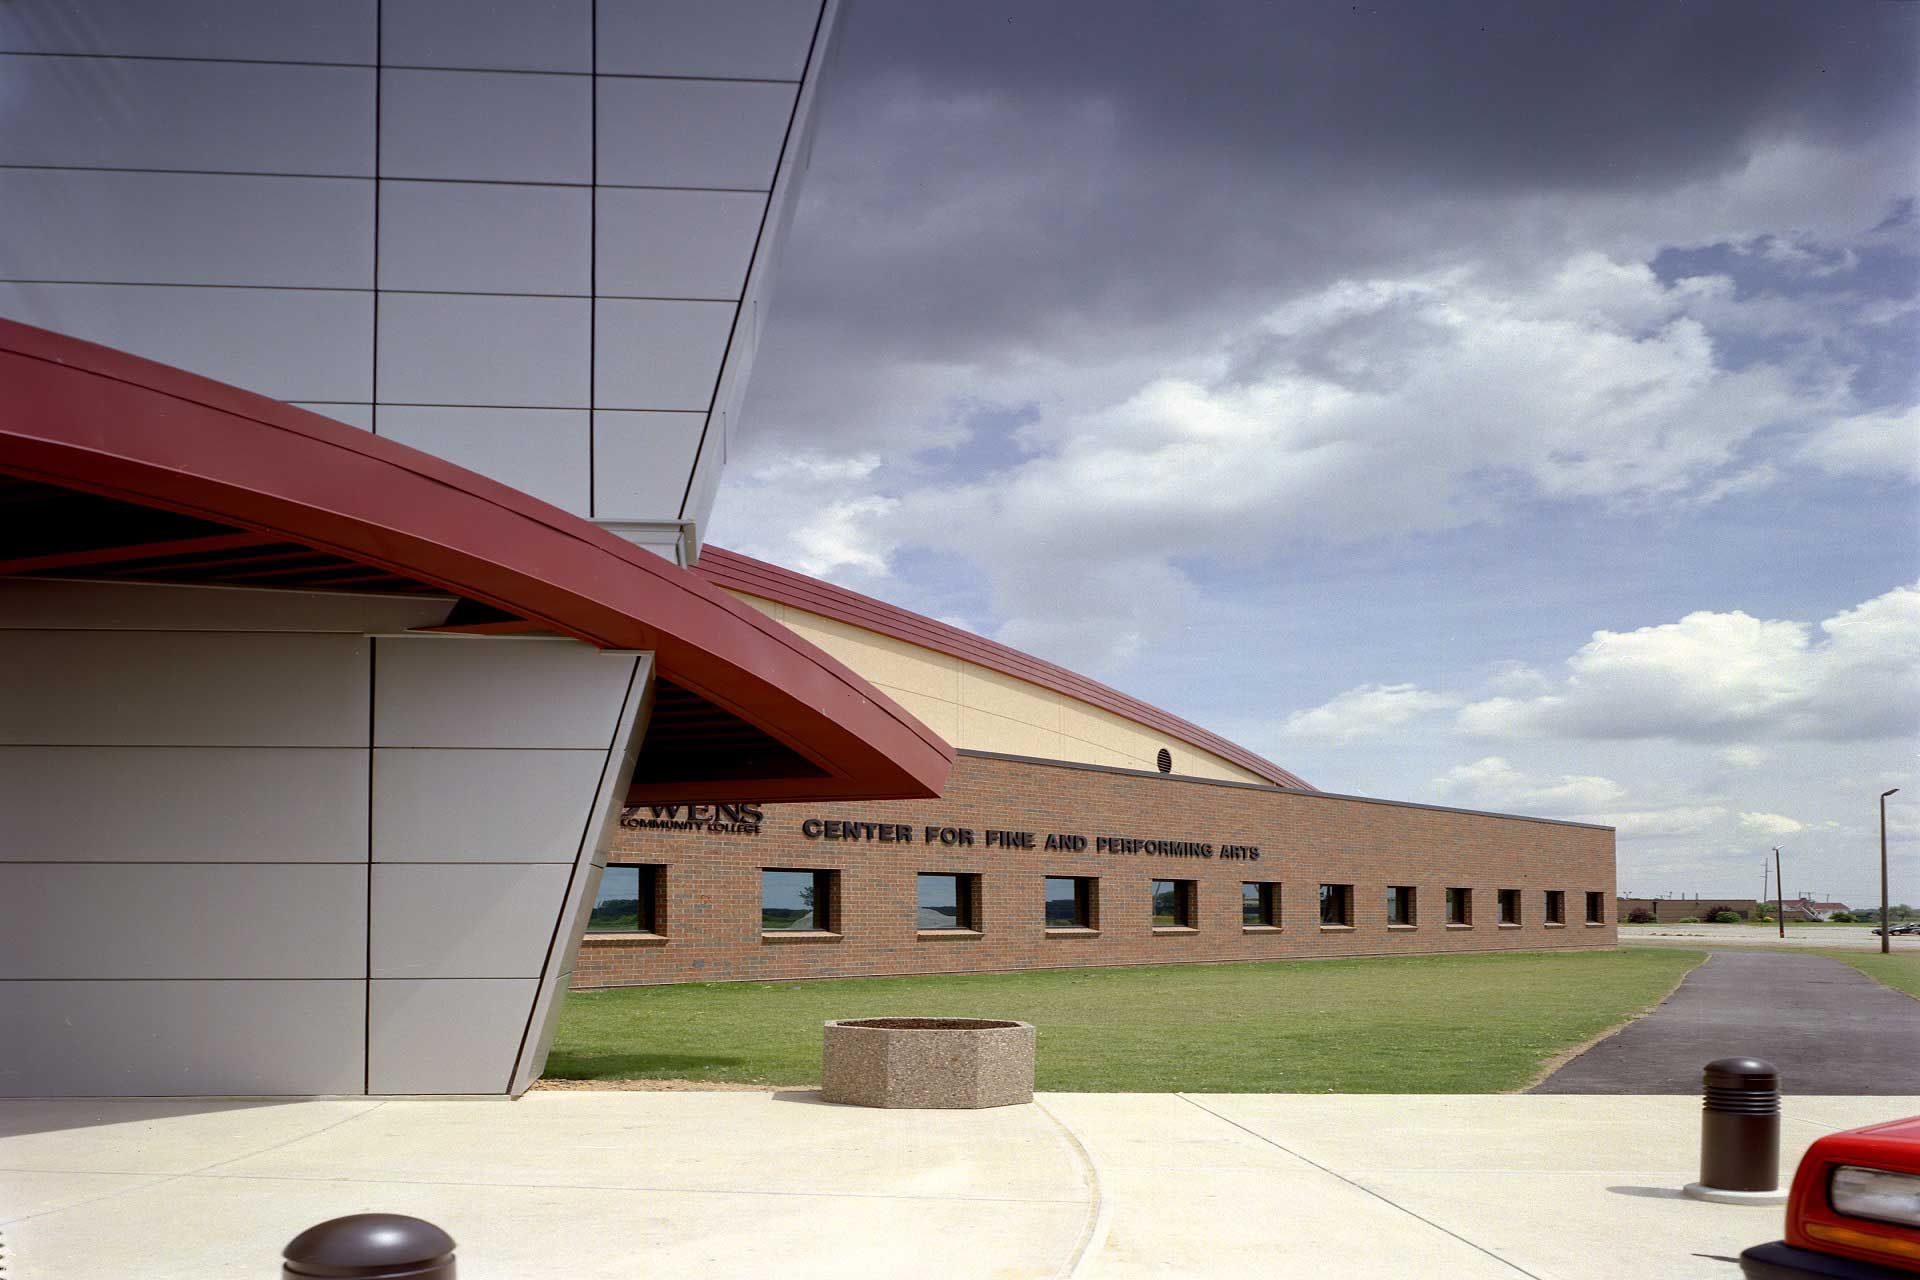 OWENS PERFORMING ARTS